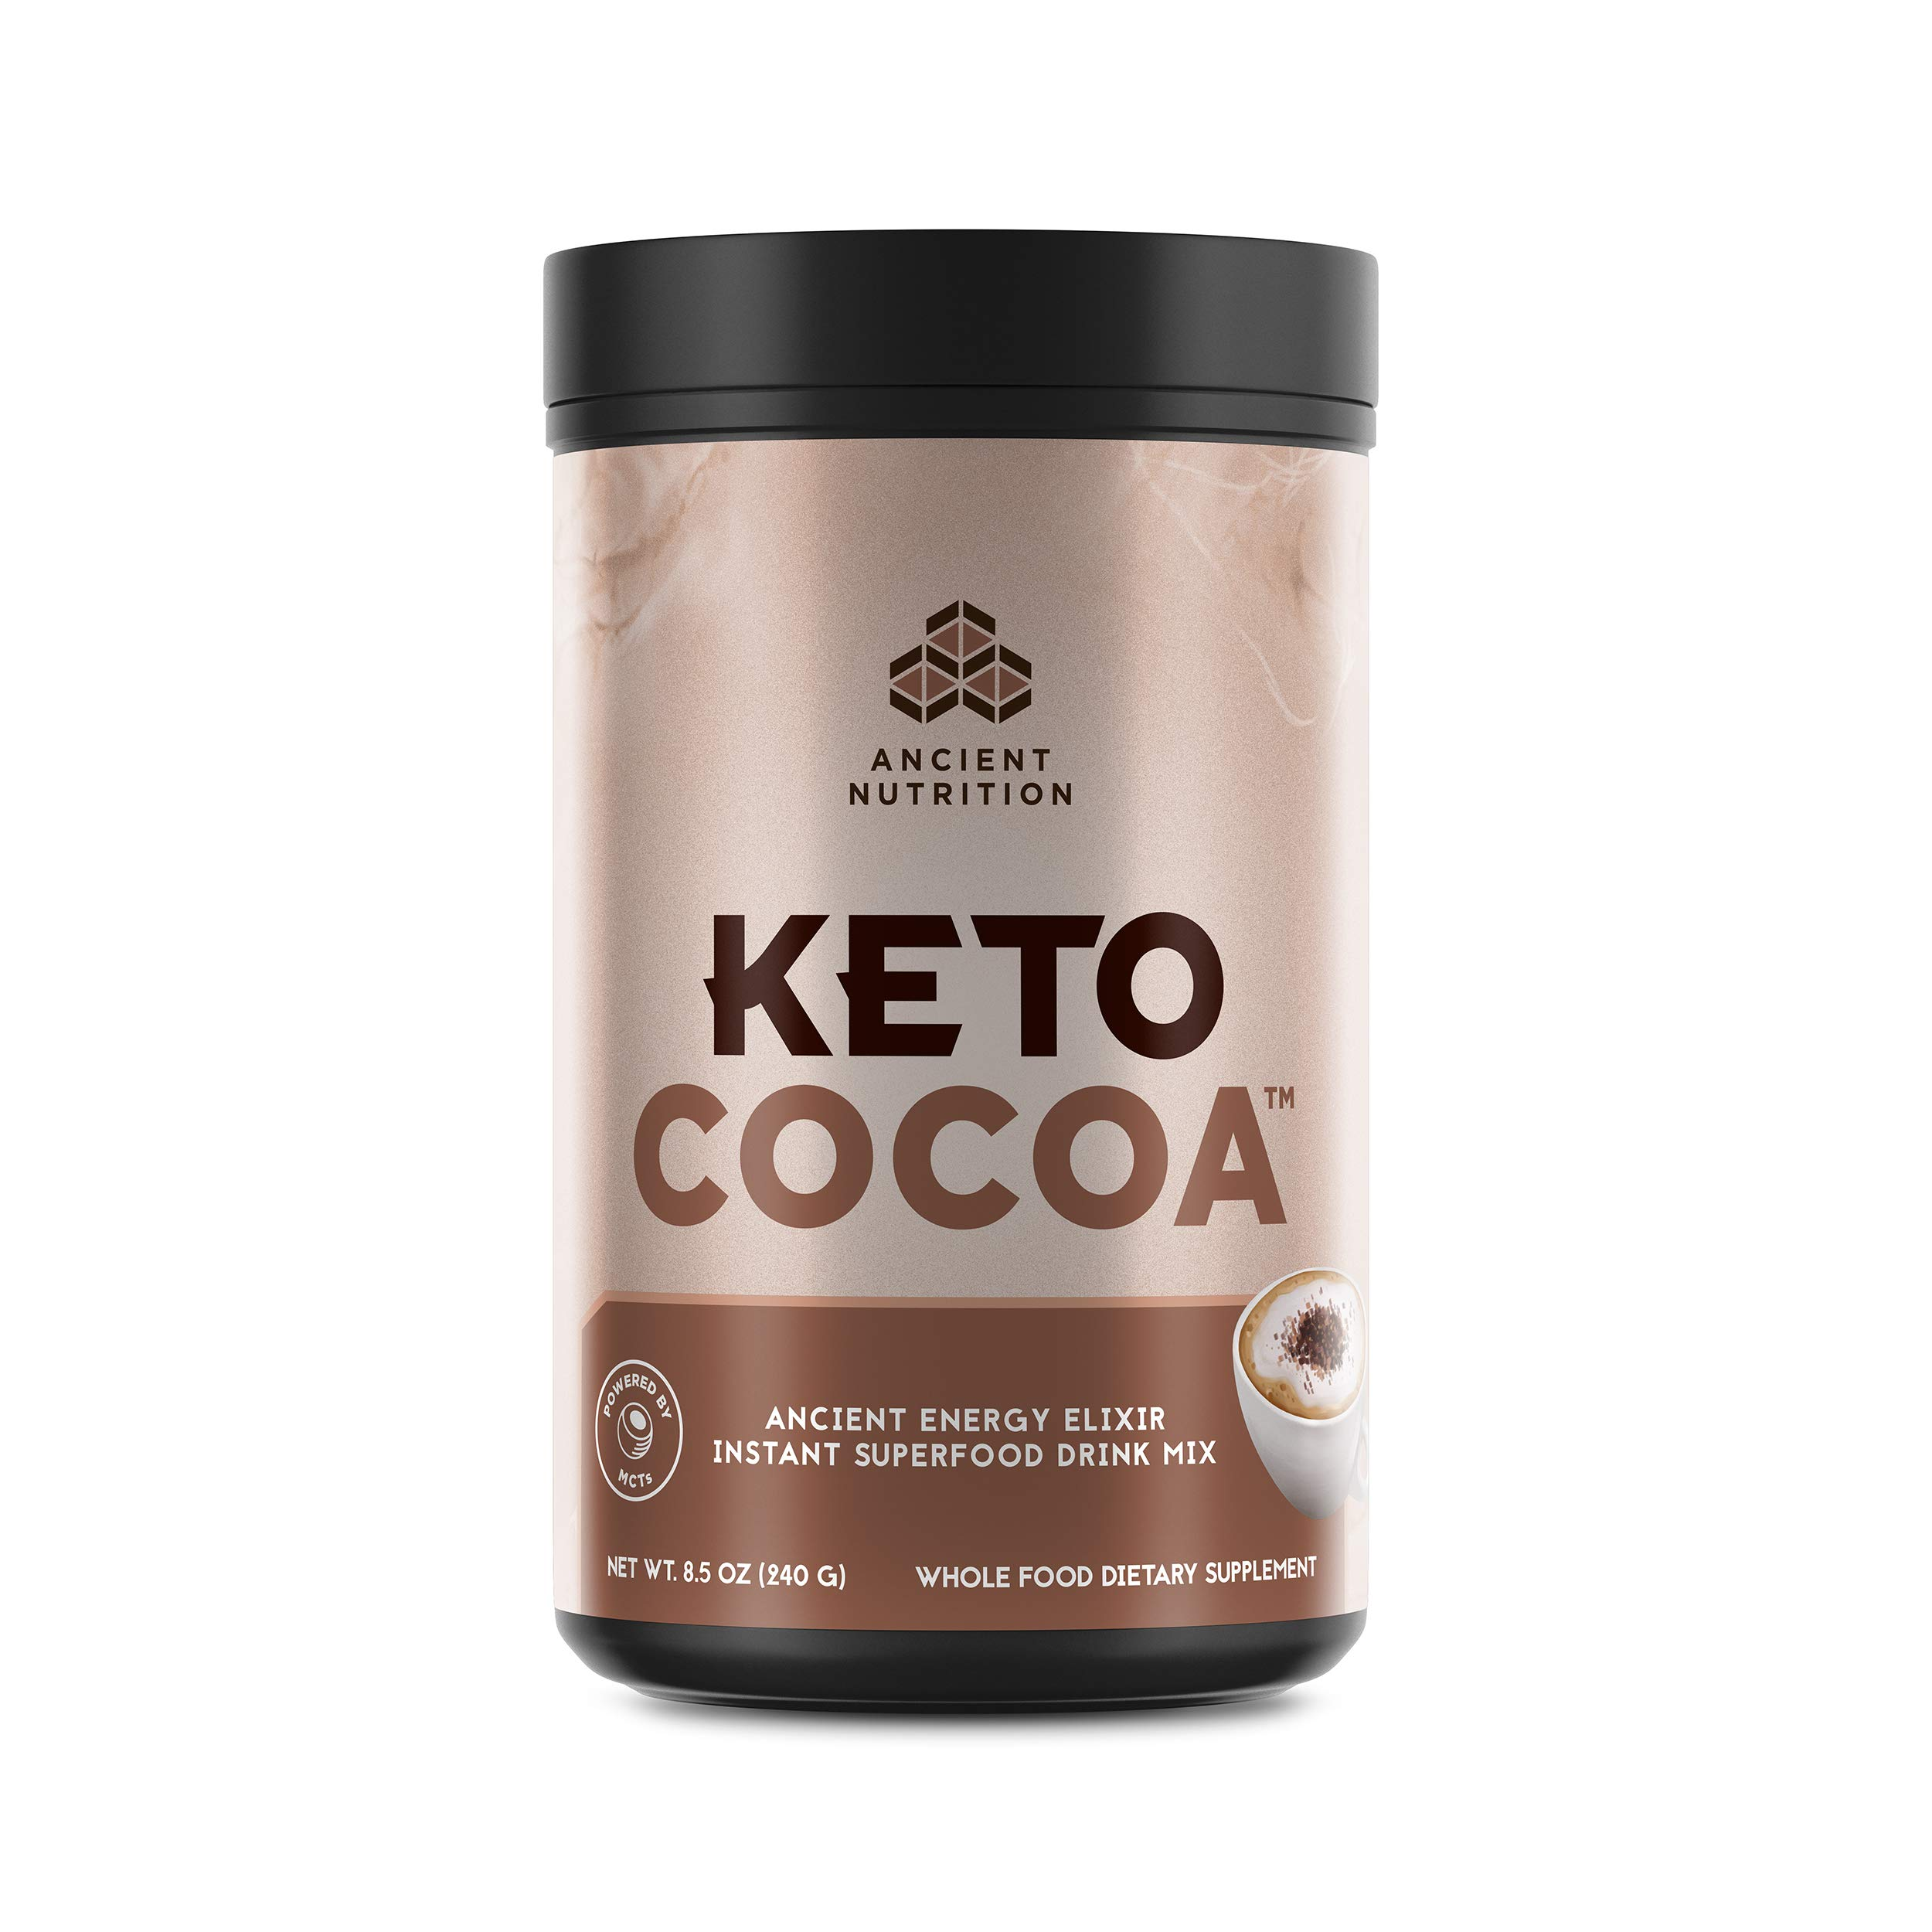 Ancient Nutrition KetoCOCOA Energy Elixir Powder, 20 Servings, Keto Diet Supplement, Hydrolyzed Collagen Peptides, MCTs from Coconut, Organic Cocoa Beans, Energy Booster